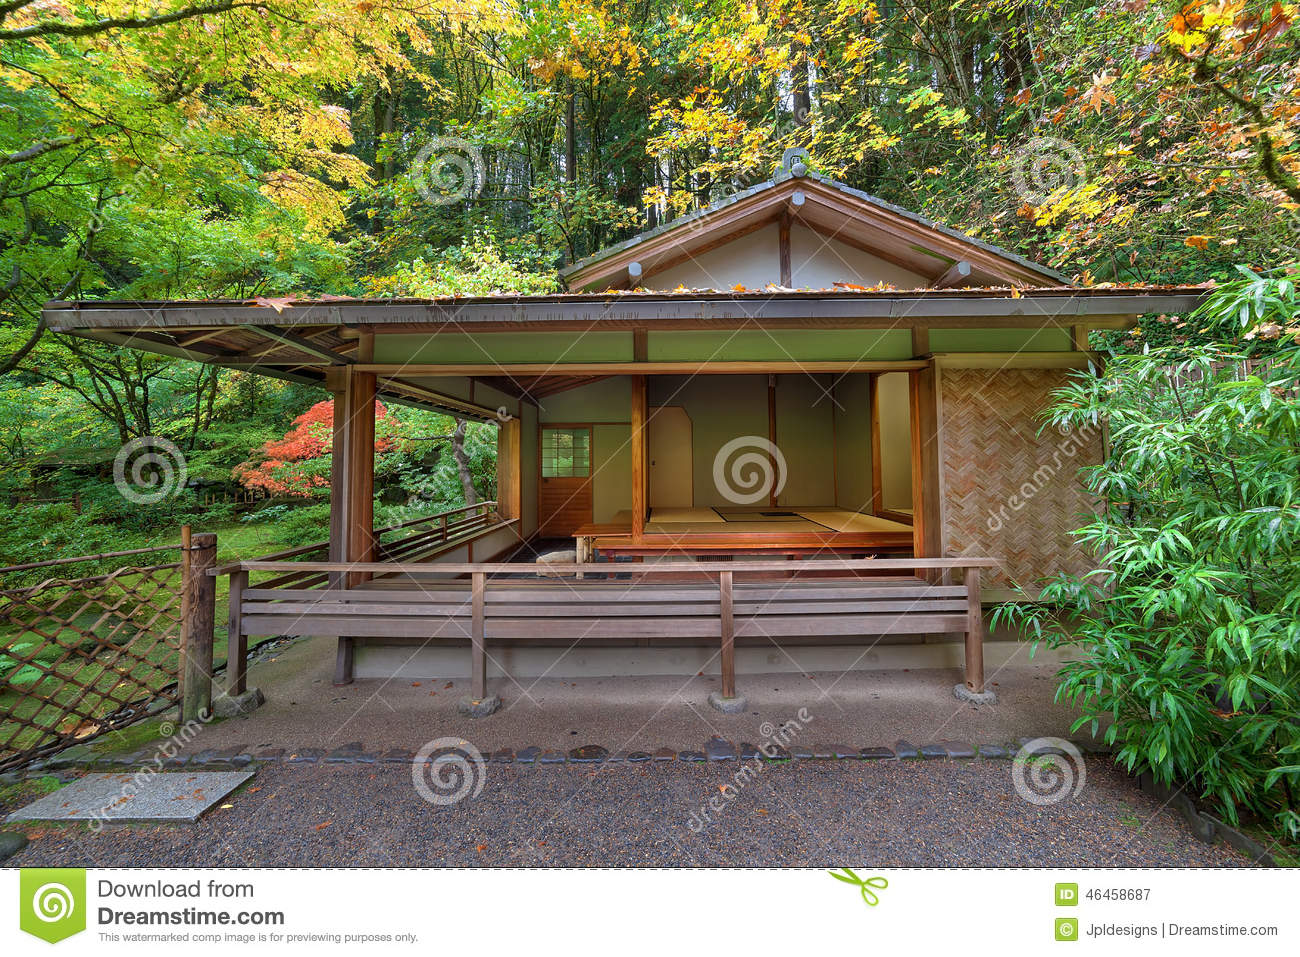 Tea house at japanese garden in fall seaston stock photo for Japanese house garden